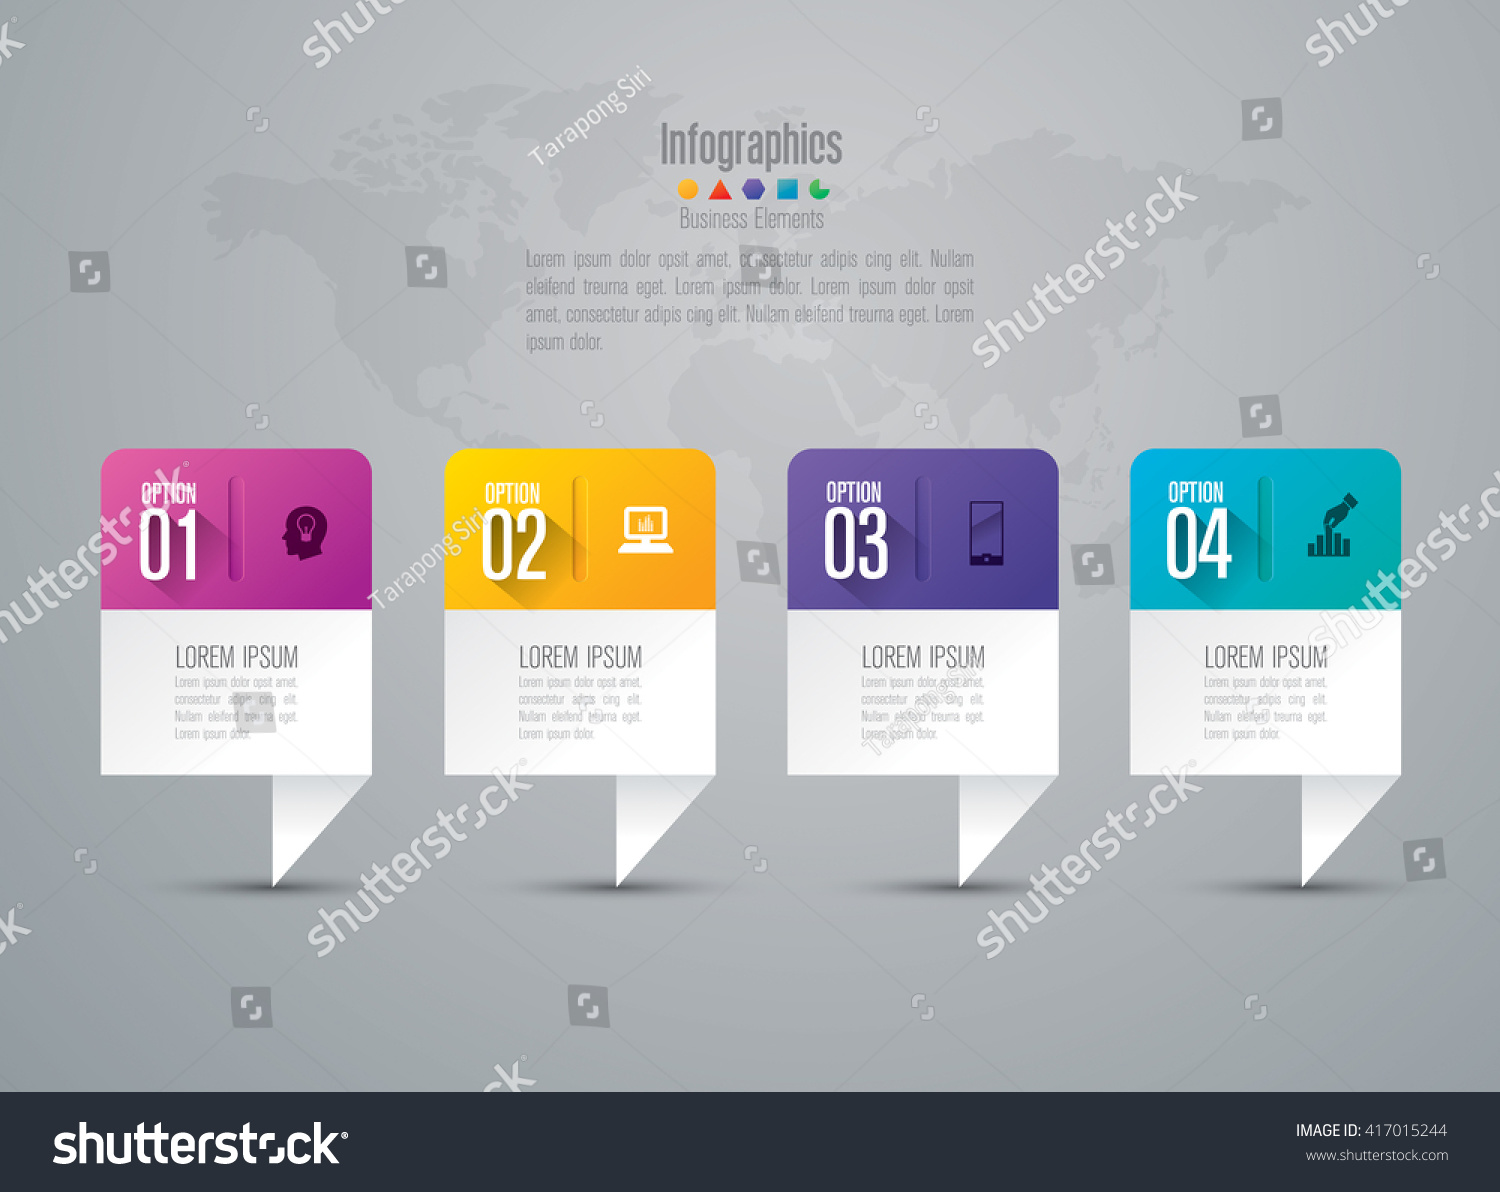 Infographic Design Vector Marketing Icons Can Stock-Vektorgrafik ...